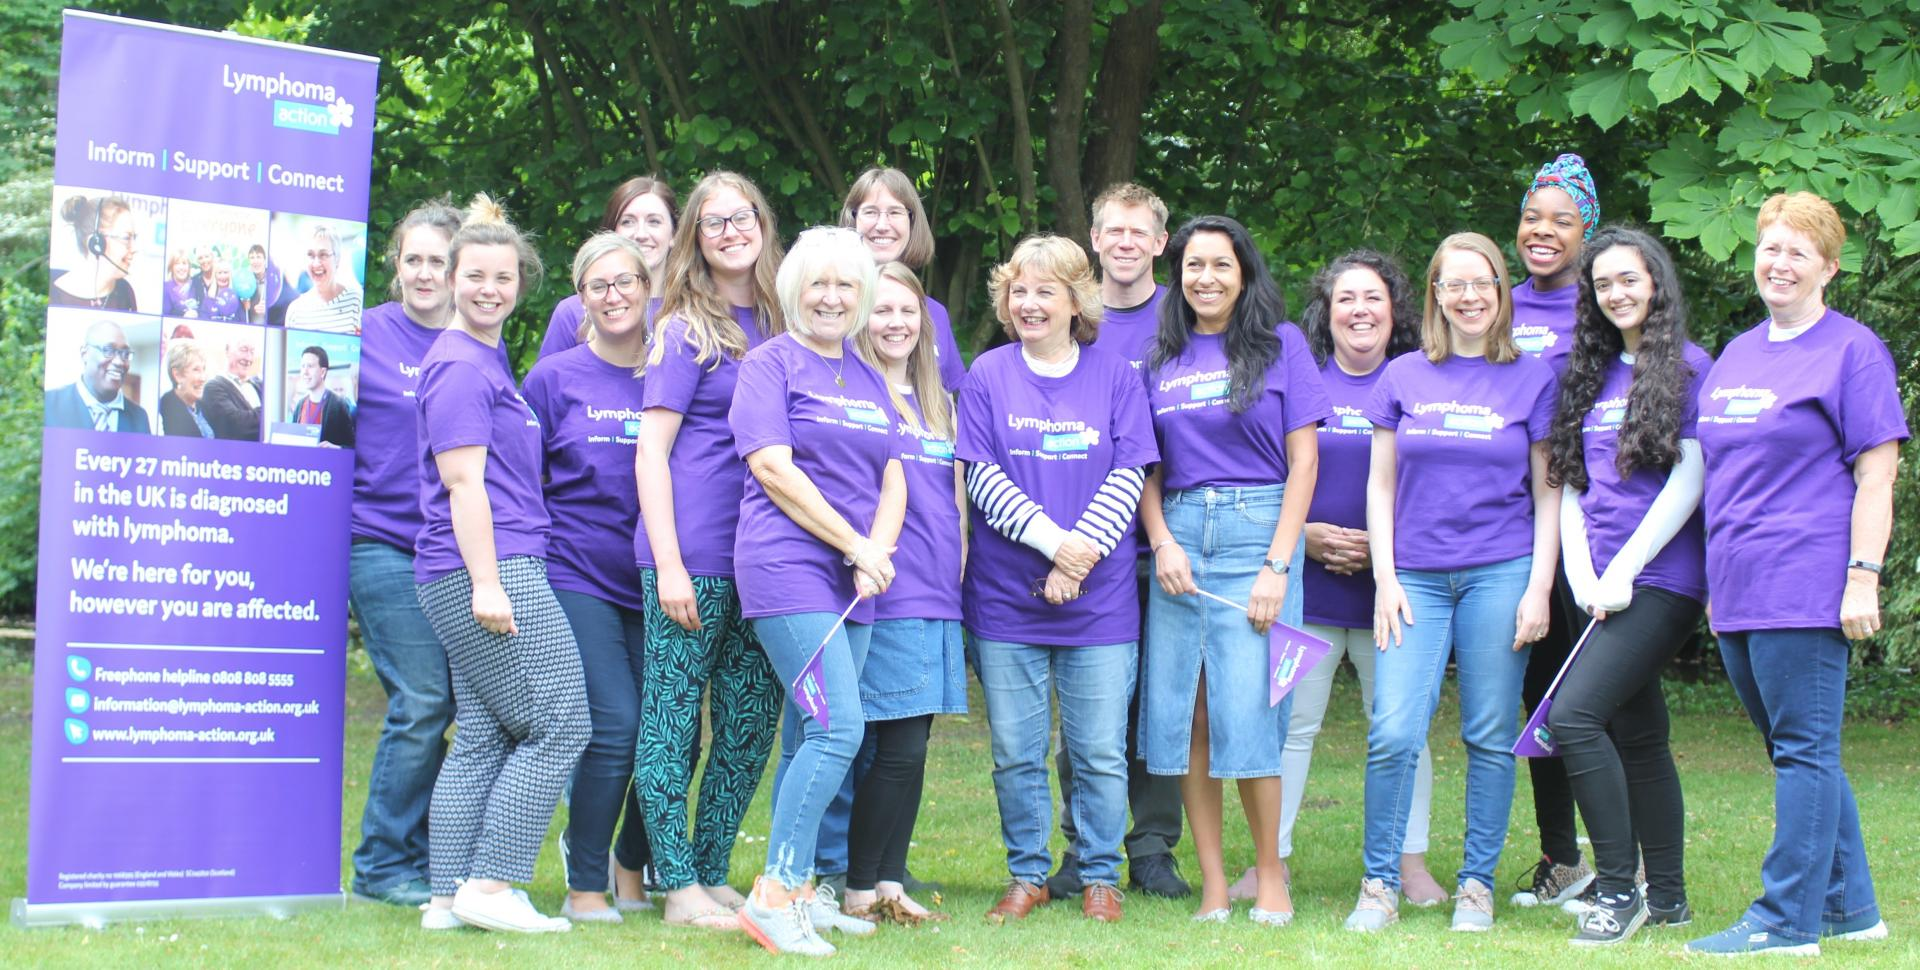 Group of staff in purple t-shirts smiling